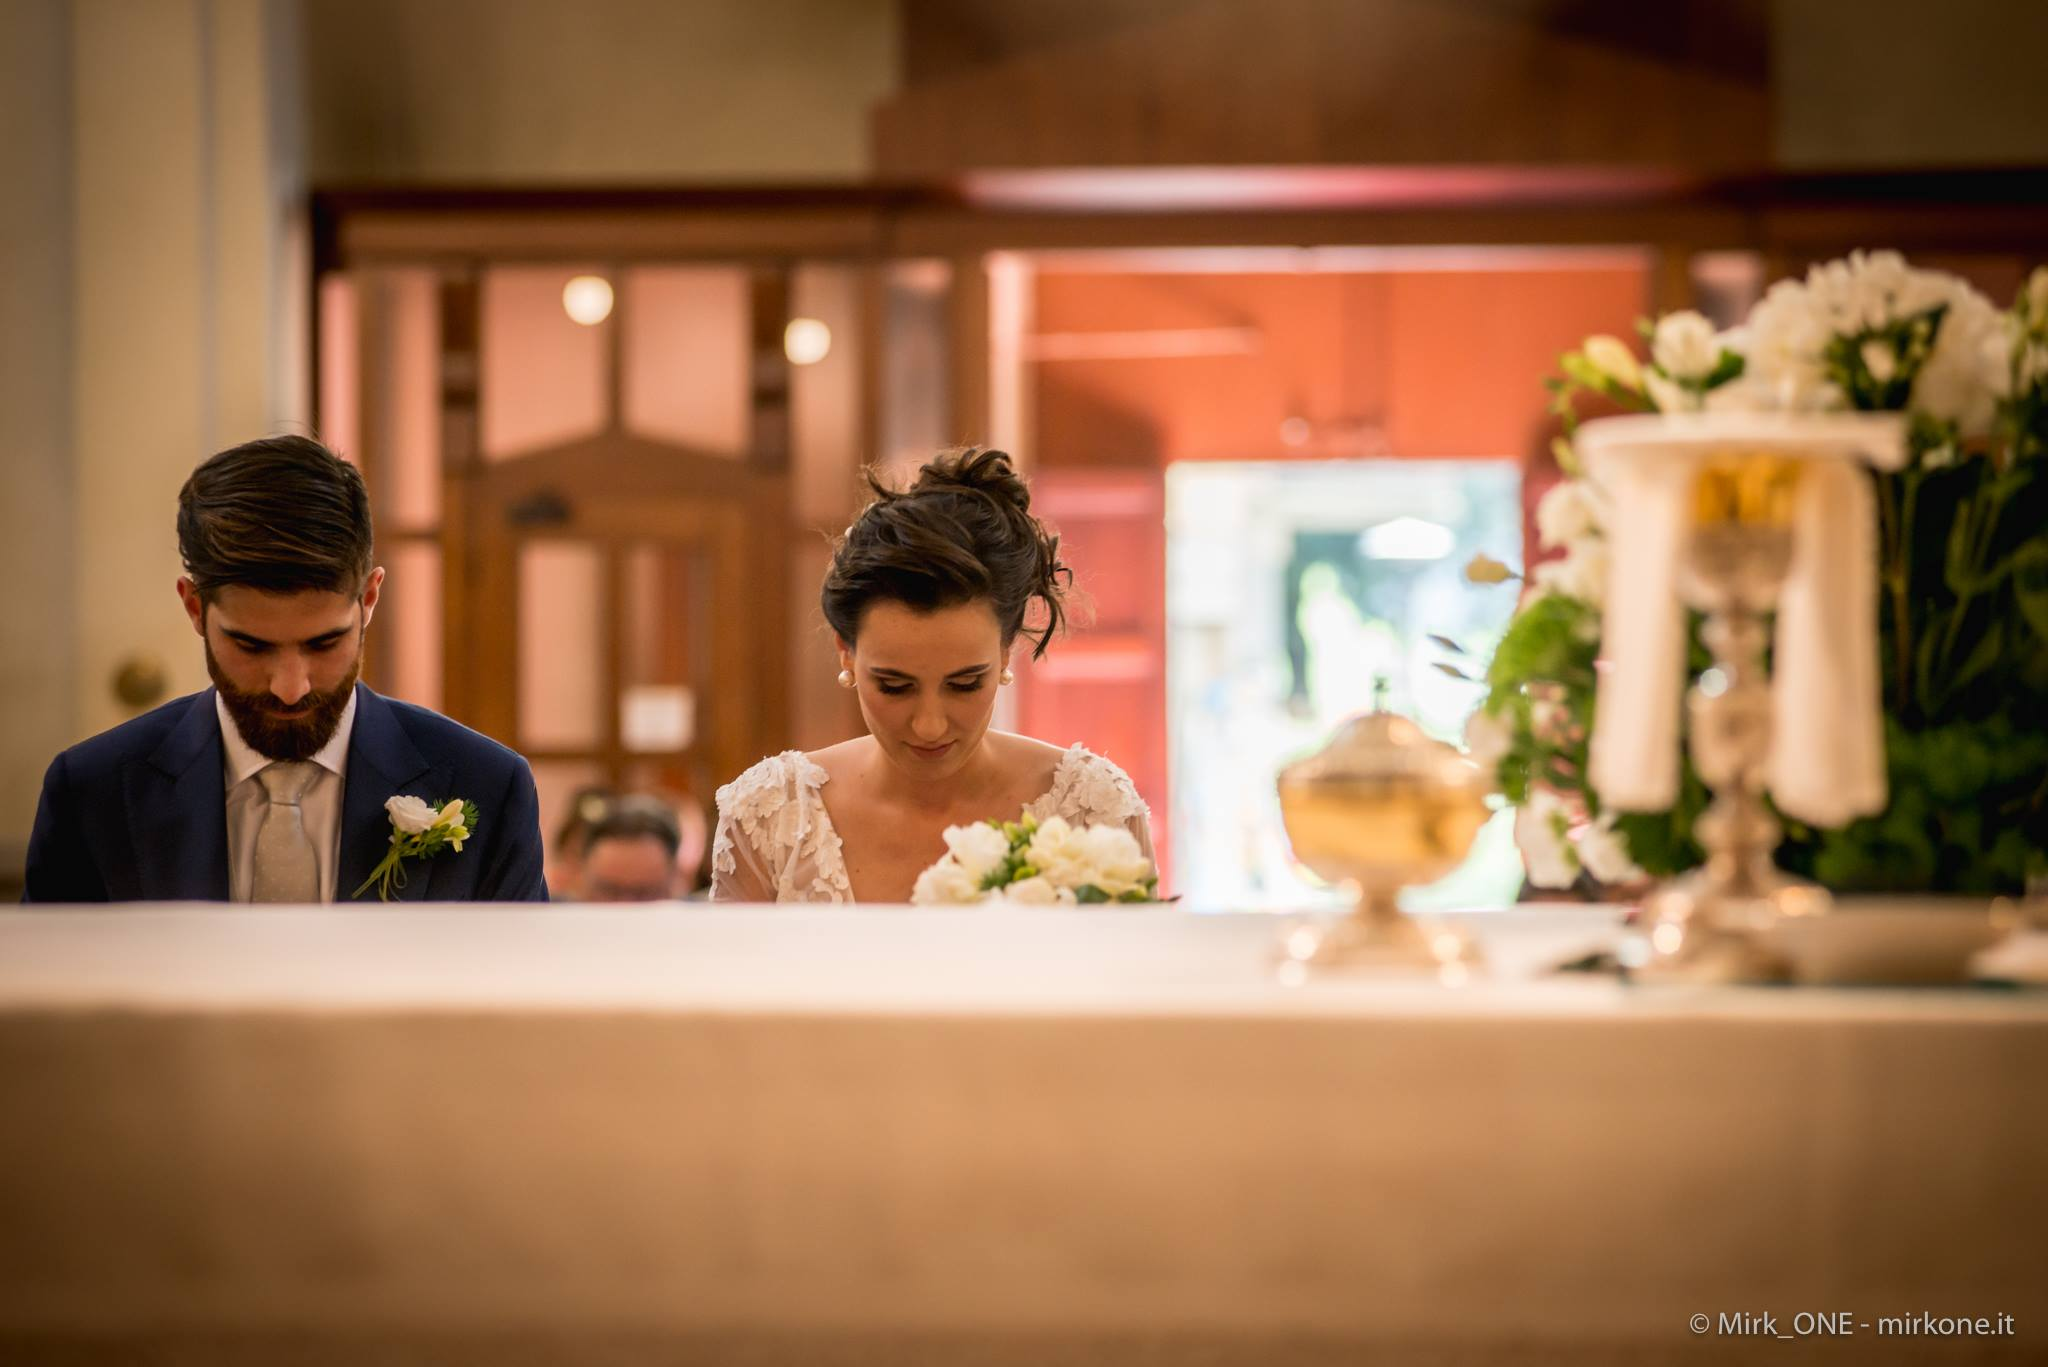 http://lnx.mirkone.it/wp-content/uploads/2015/07/mirk_ONE-fotografo-matrimonio-00106.jpg